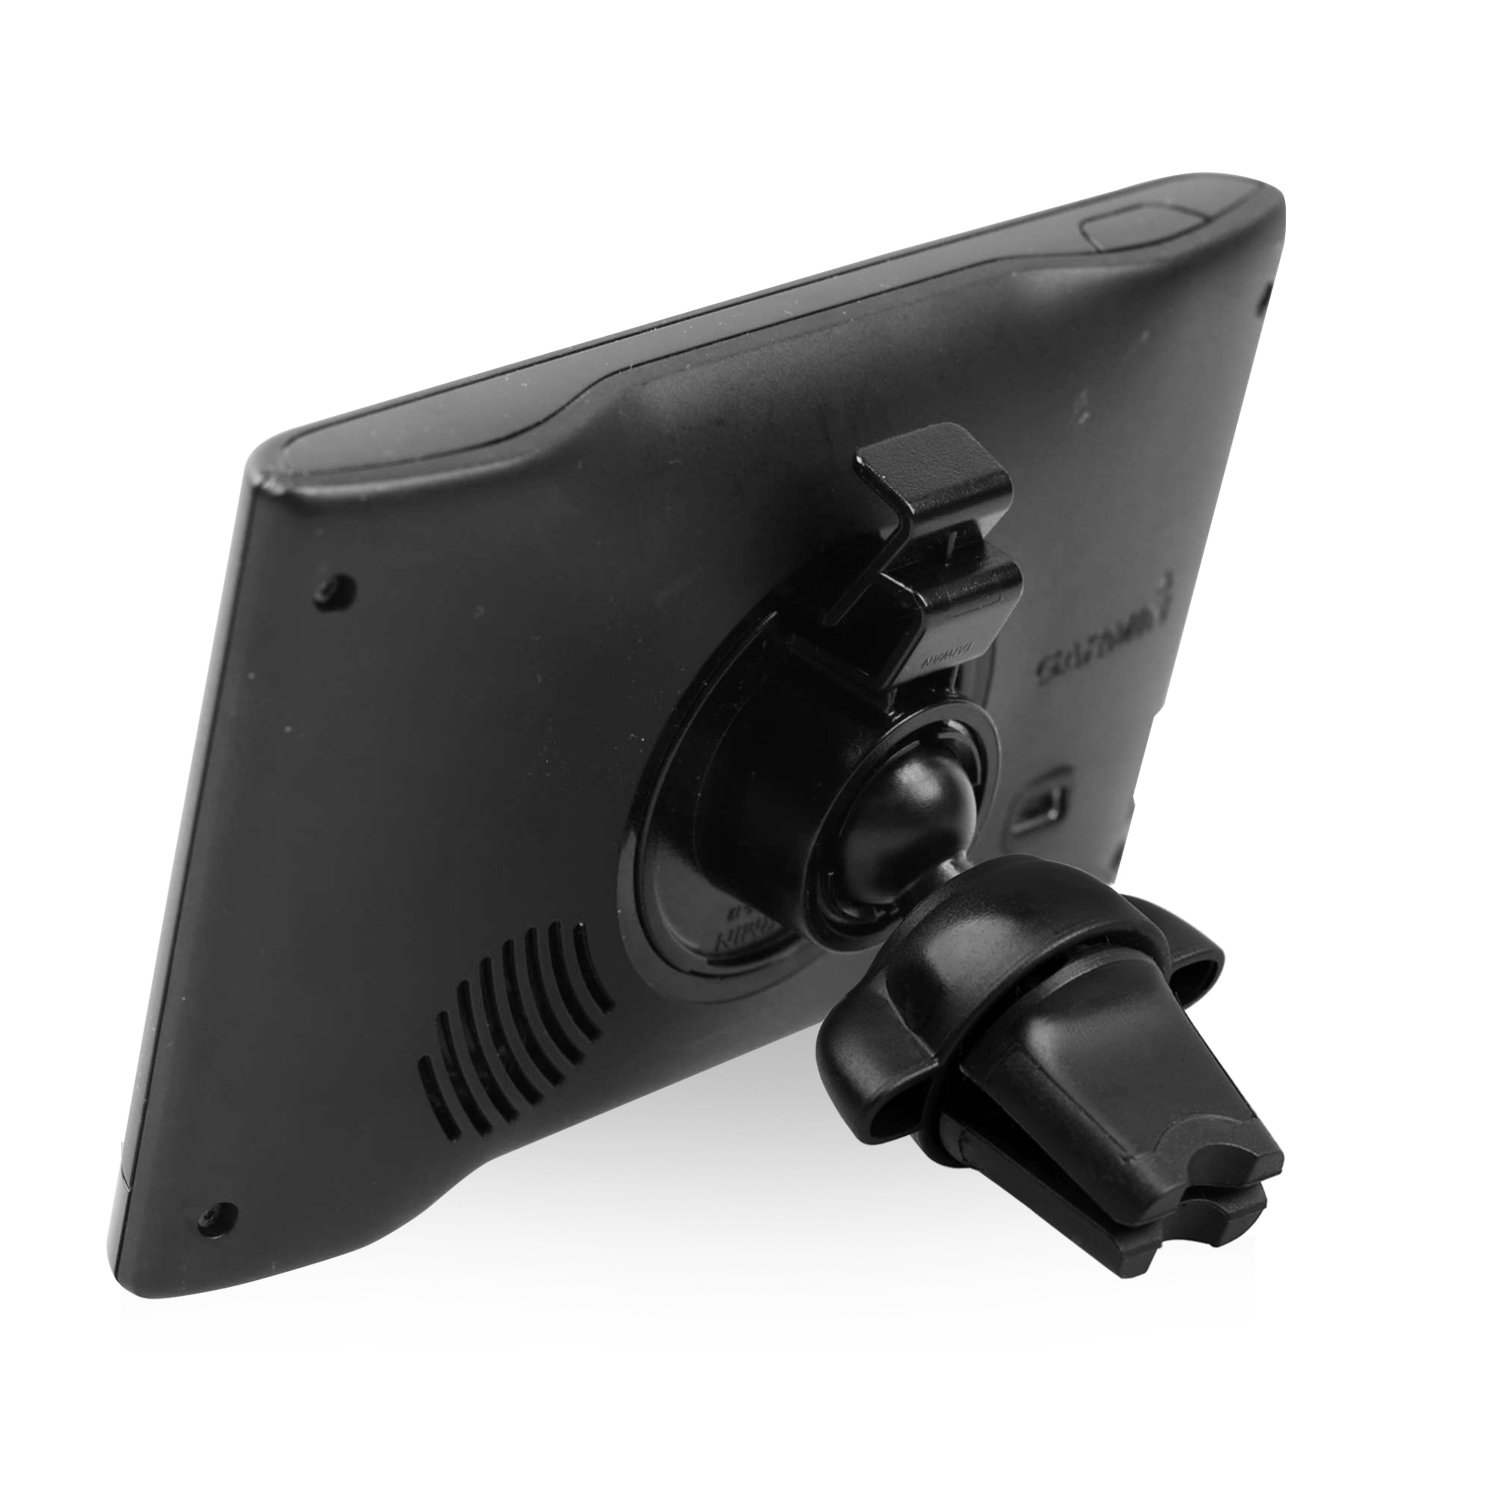 GPS Mount, APPS2Car Air Vent GPS Mount GPS Holder Compatible with Garmin Nuvi Serie 3.5 to 6 inch GPS [Adjustable Mount Base]